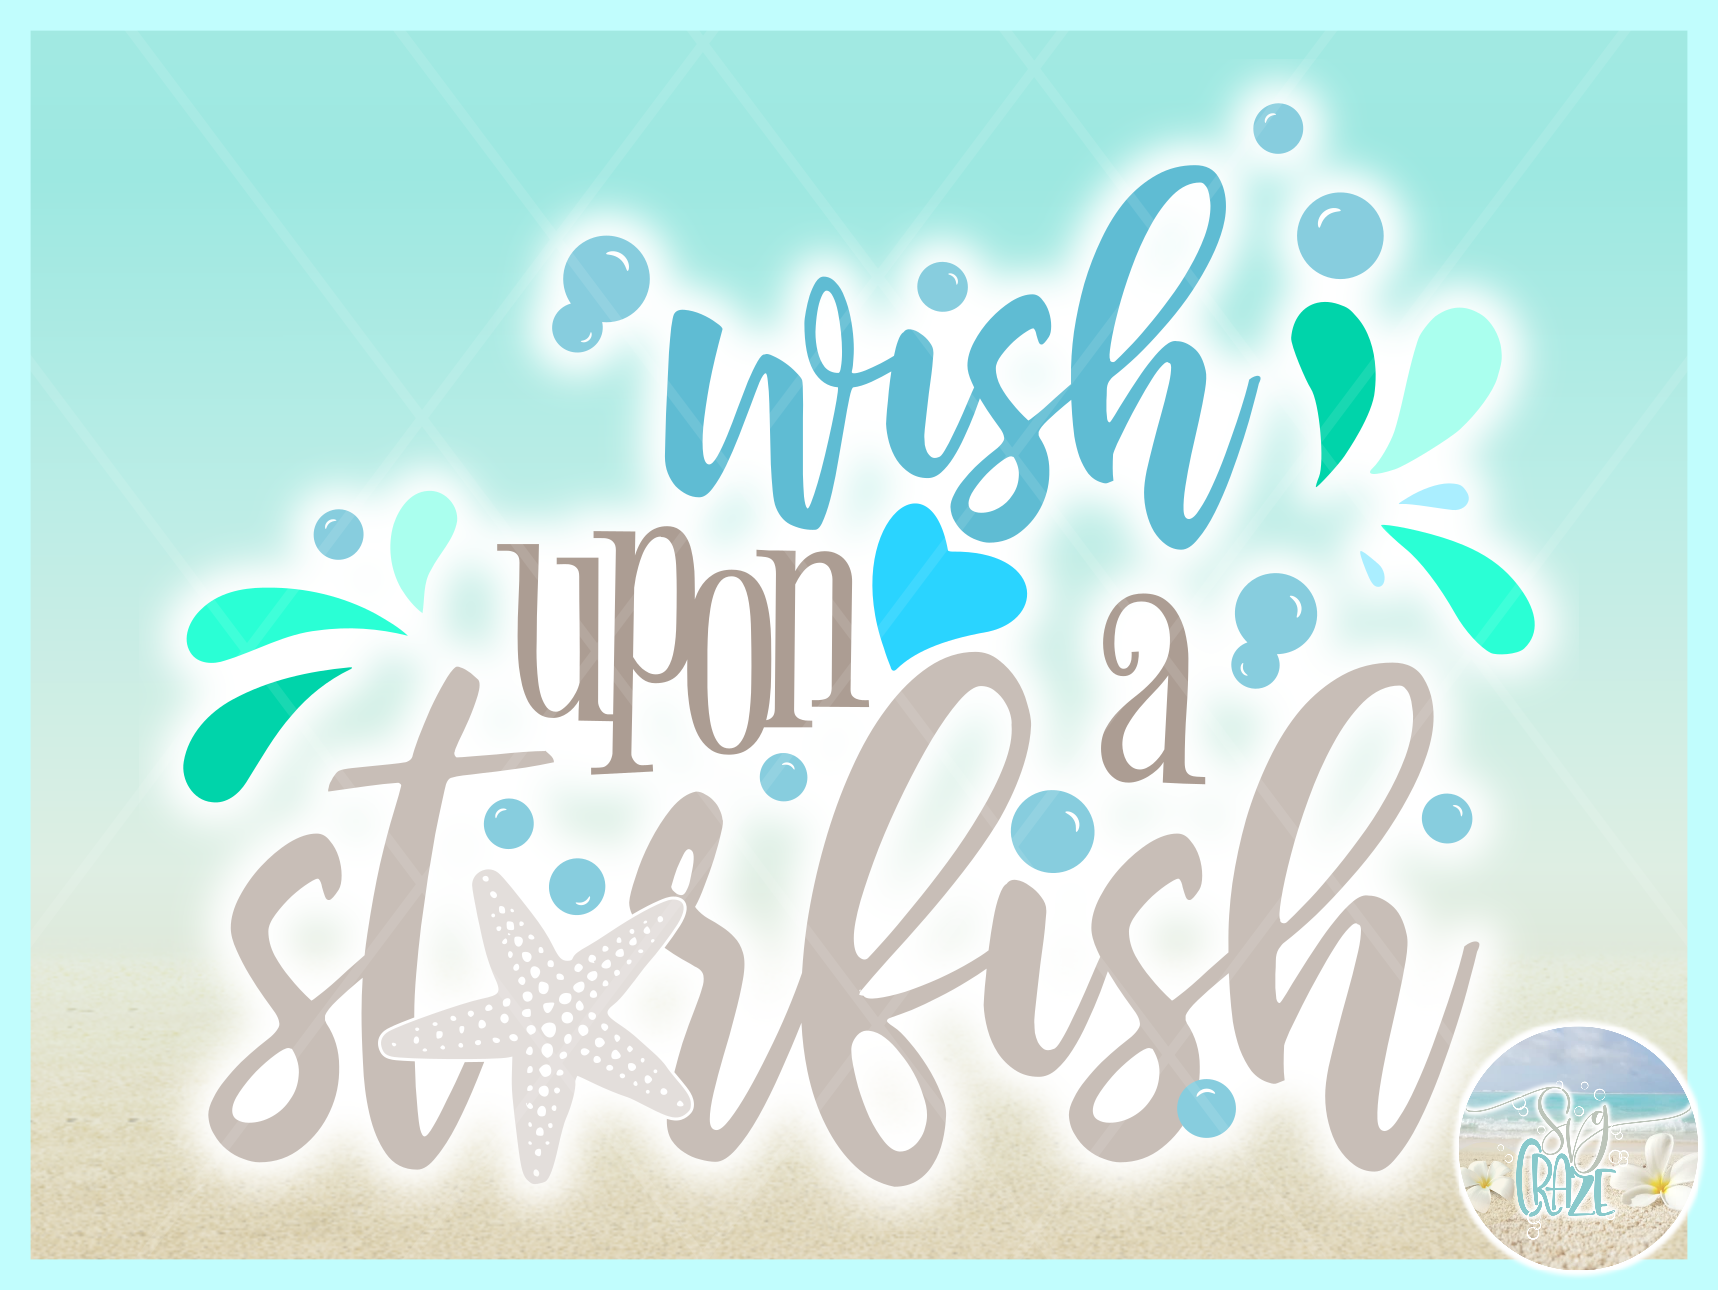 Wish Upon A Star Fish Quote Svg Dxf Eps Png Pdf Files example image 2